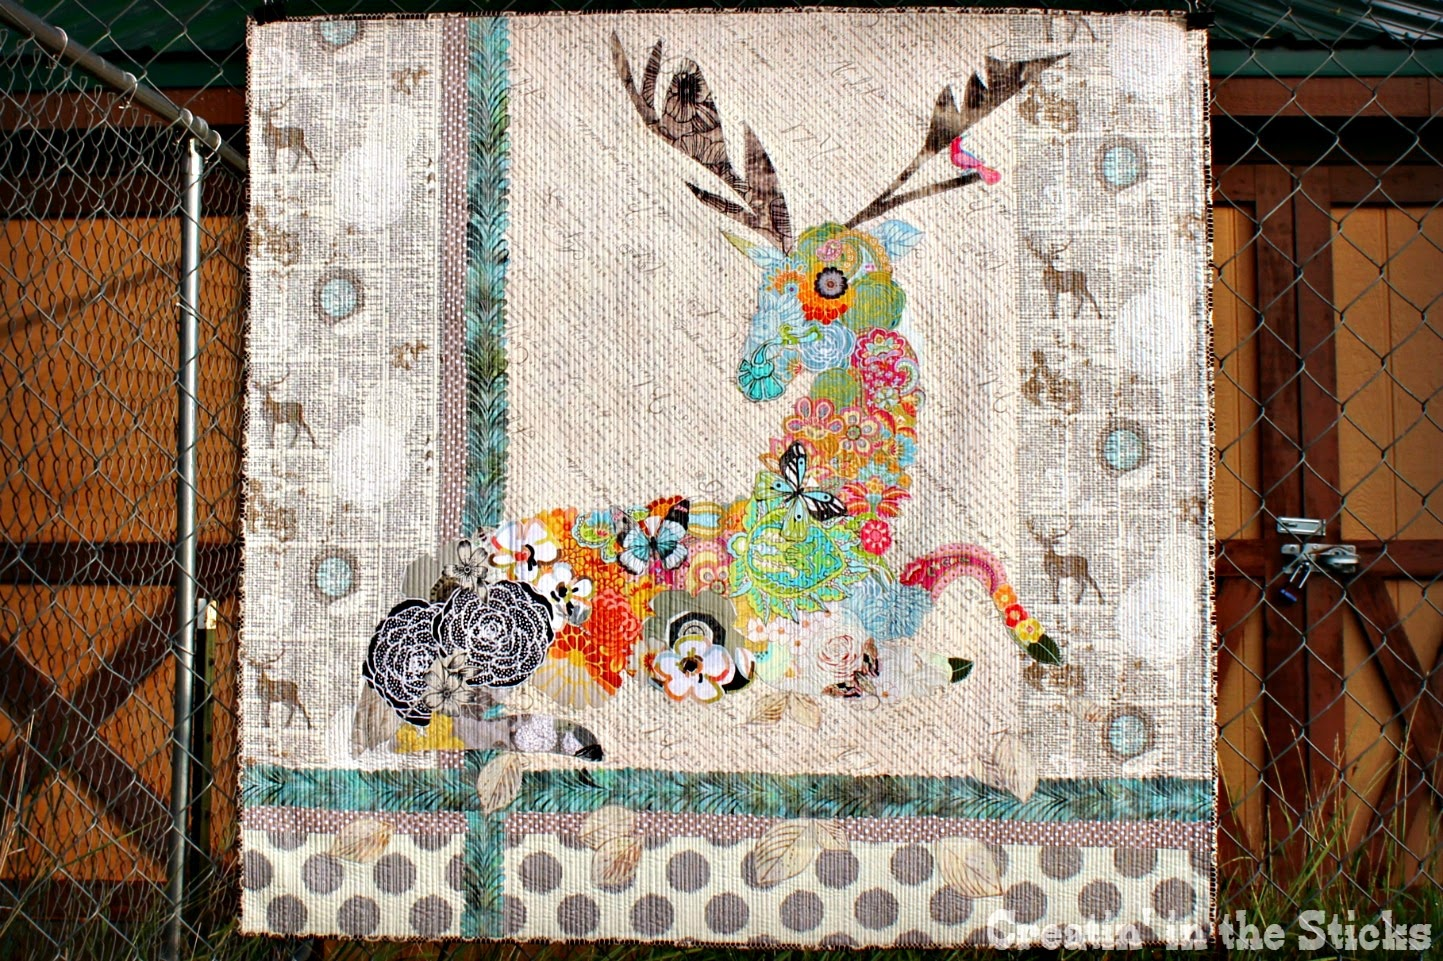 Creatin' in the Sticks: My Dear- Oh Deer Collage Quilt : photo collage quilt - Adamdwight.com